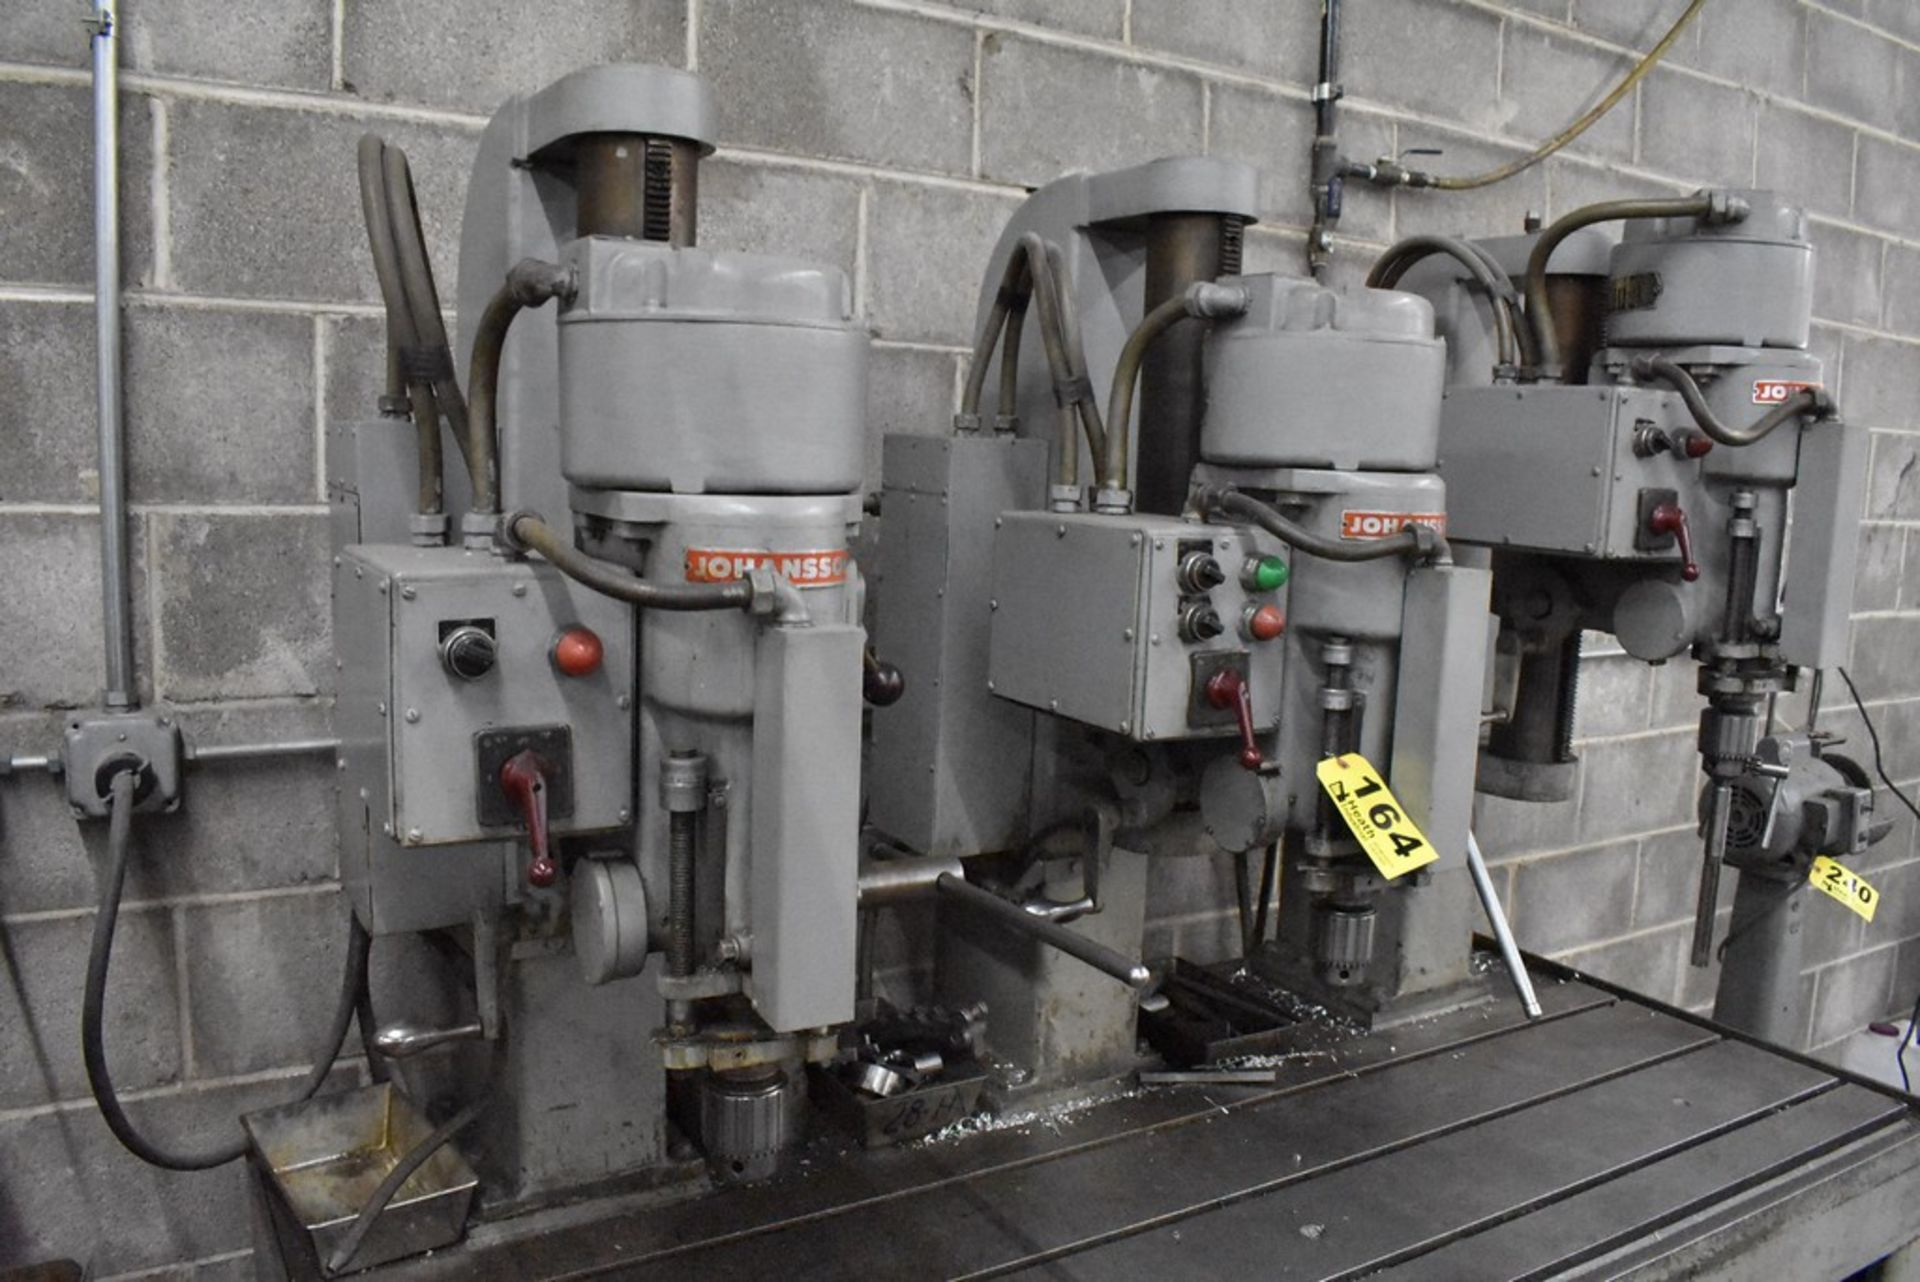 """JOHANNSEN 30"""" 3 SPINDLE DRILL, S/N 11800,11801, &11802, UP TO 1520 RPM SPINDLE, MOUNTED ON 20""""X68"""" - Image 3 of 6"""